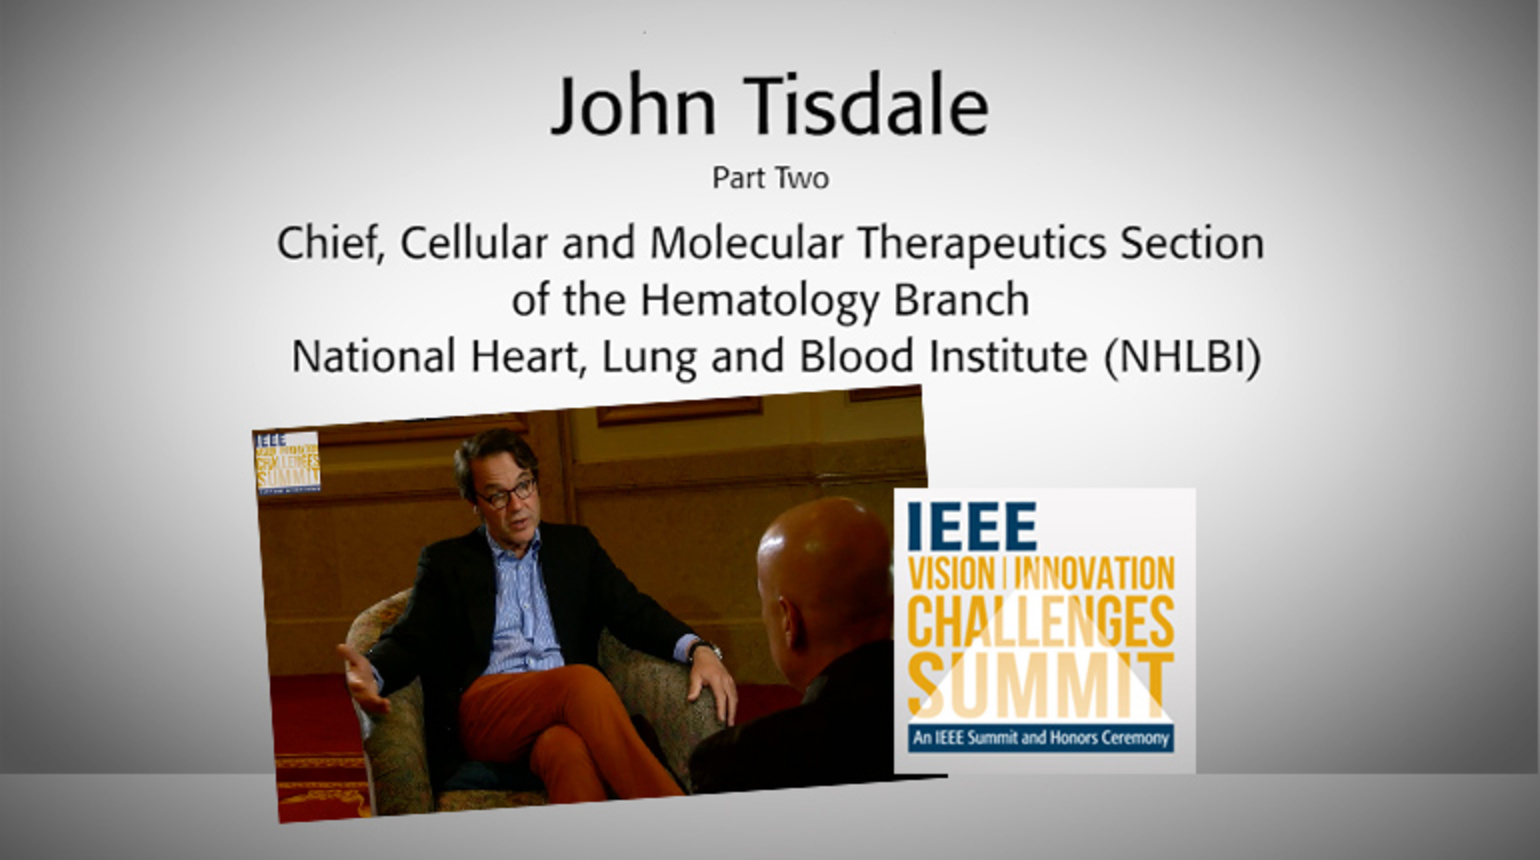 Part Two: Interview with John Tisdale—IEEE VIC Summit 2018